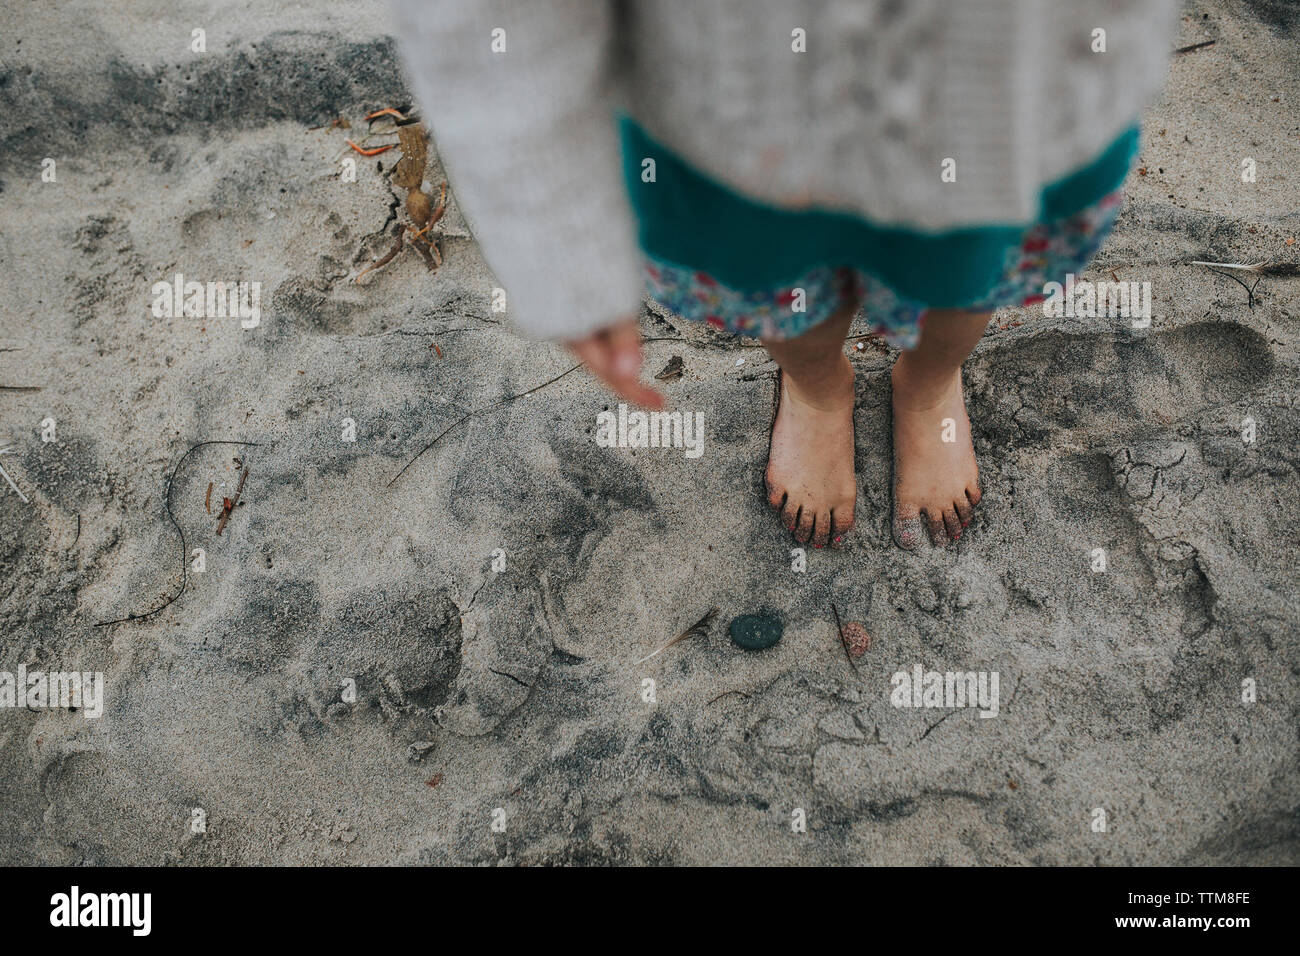 Low section of girl standing on wet sand at beach - Stock Image